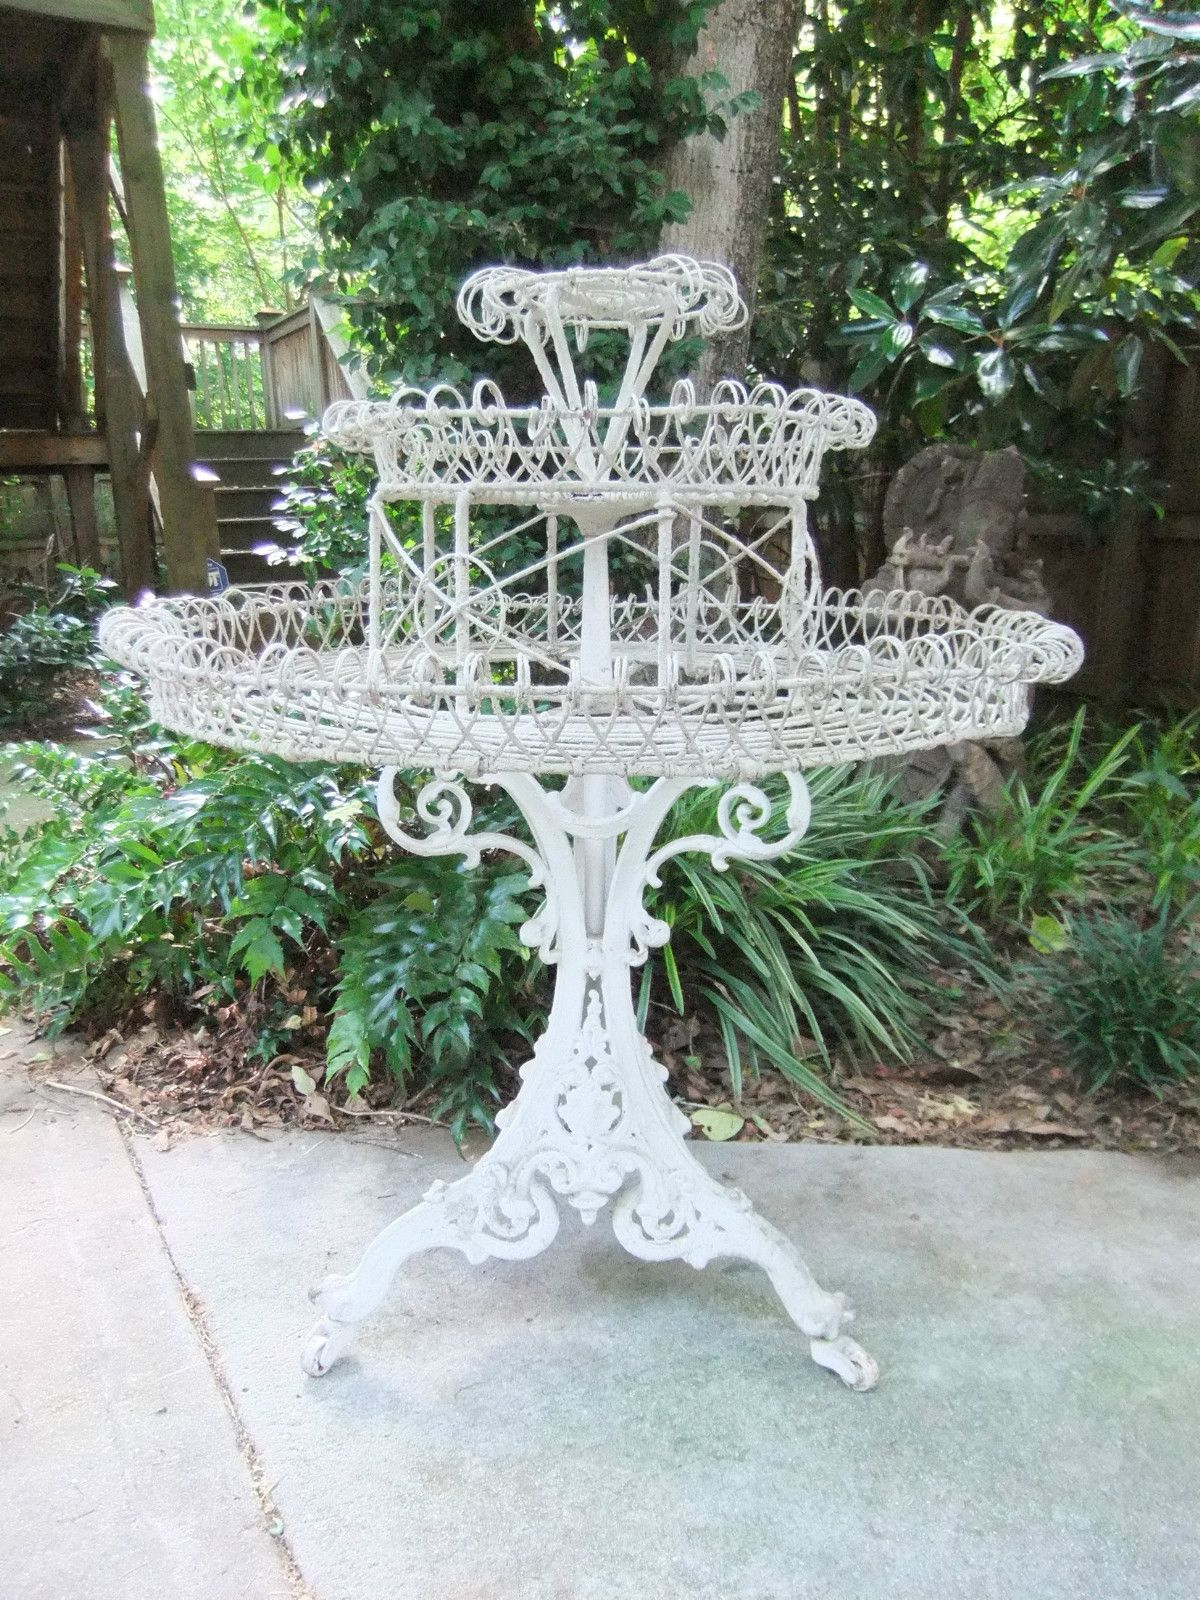 Pin By Alicia Breining On G A R D E N Wrought Iron Plant Stands